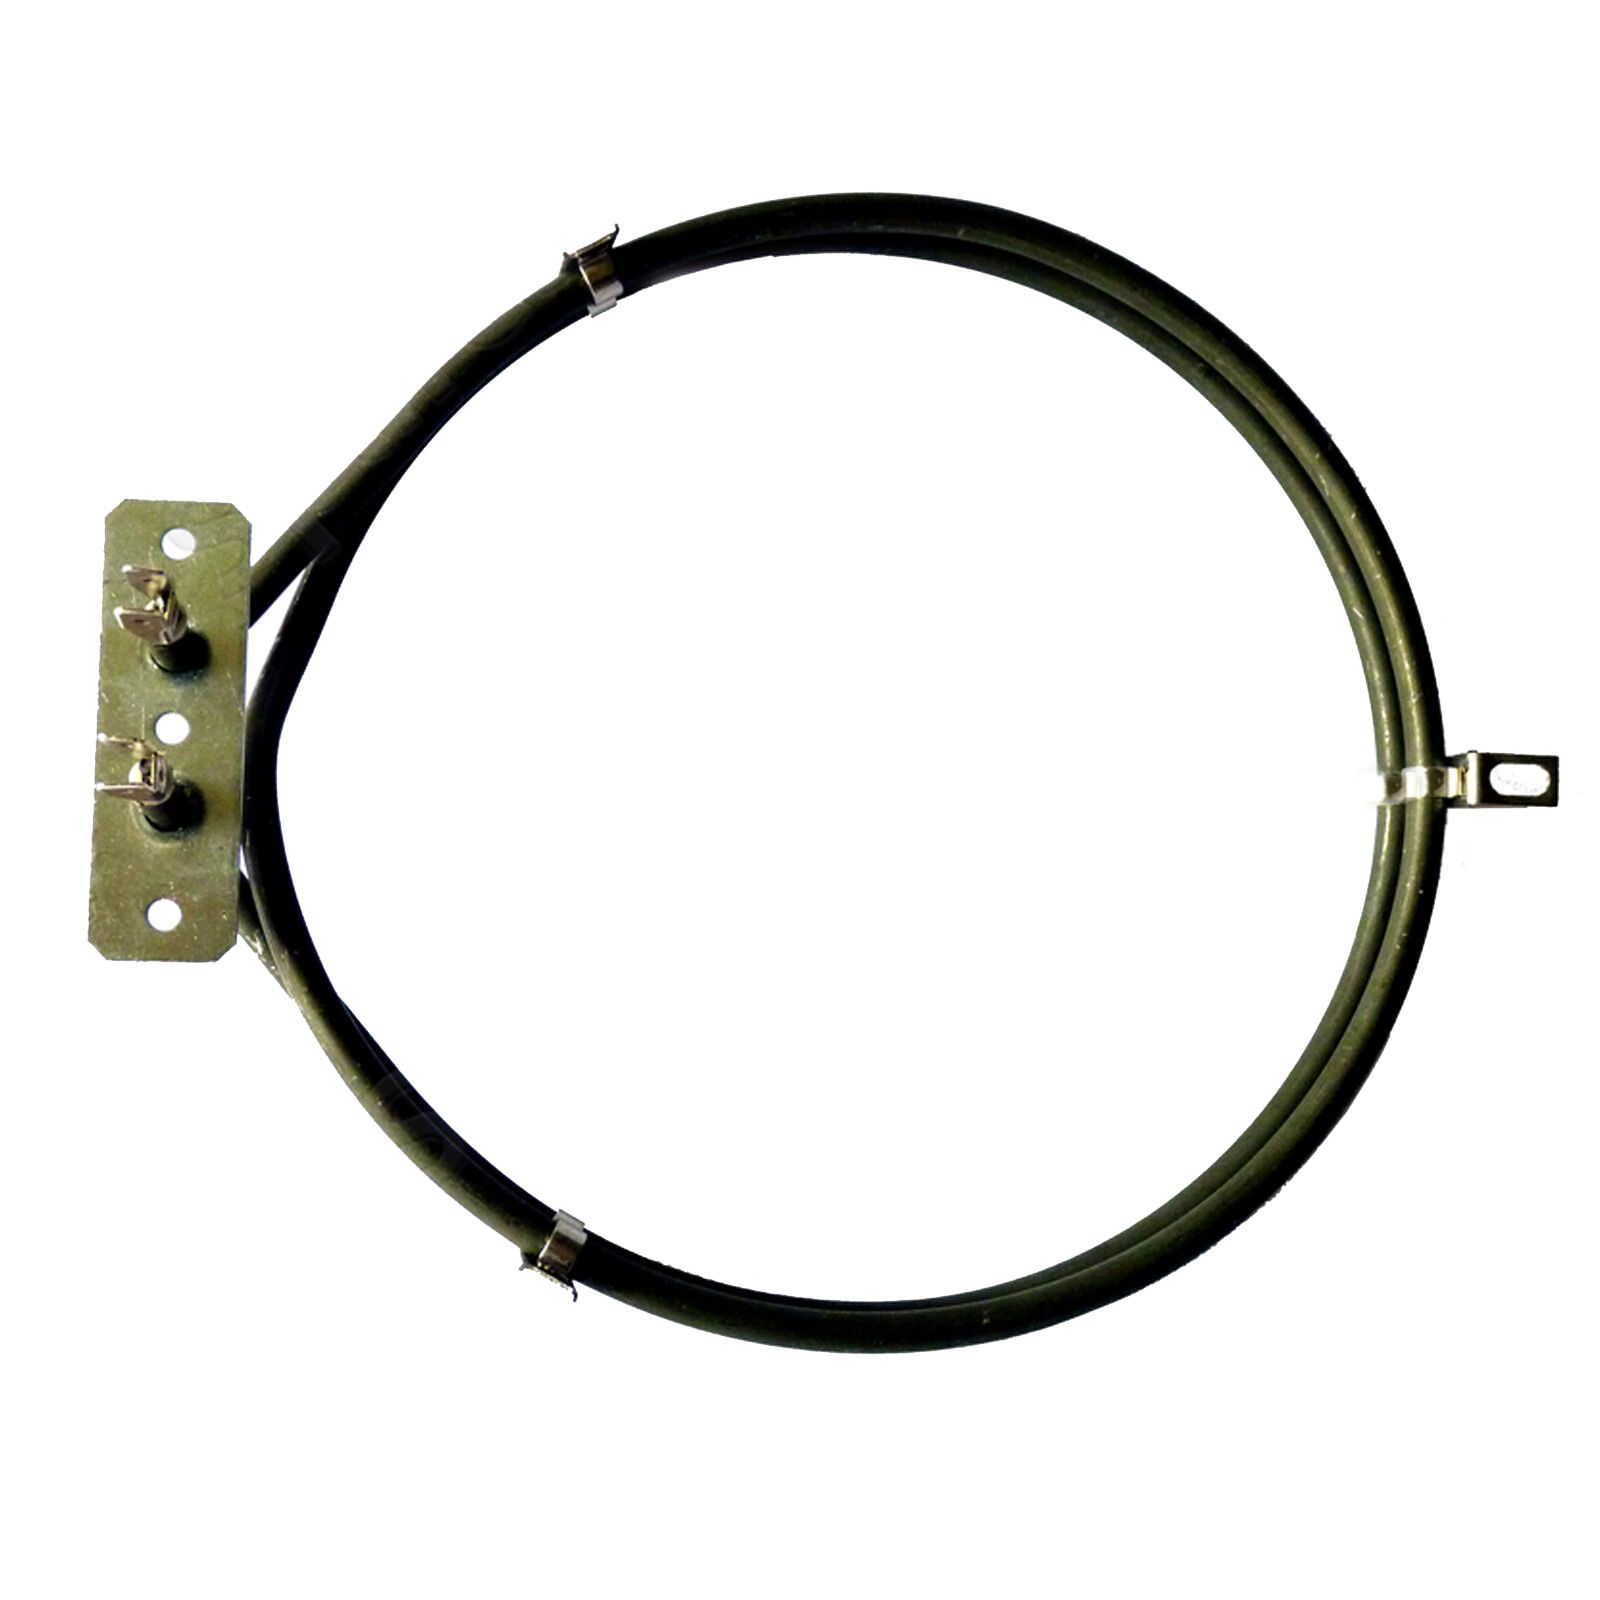 Article 0505d60c E8f8 11e4 9517 43190f32113a also Hotpoint Cannon Top Oven Dual Grill Cooker Element Eg900x Sx995x 10460g 1275 P besides Hotpoint Washing Machine Element 1604486 C00201875 5320 P besides Drain Line Inspection W Video Camera besides Mls 18073985 311 3rd street ripon ca 95366. on refridgerator with heater